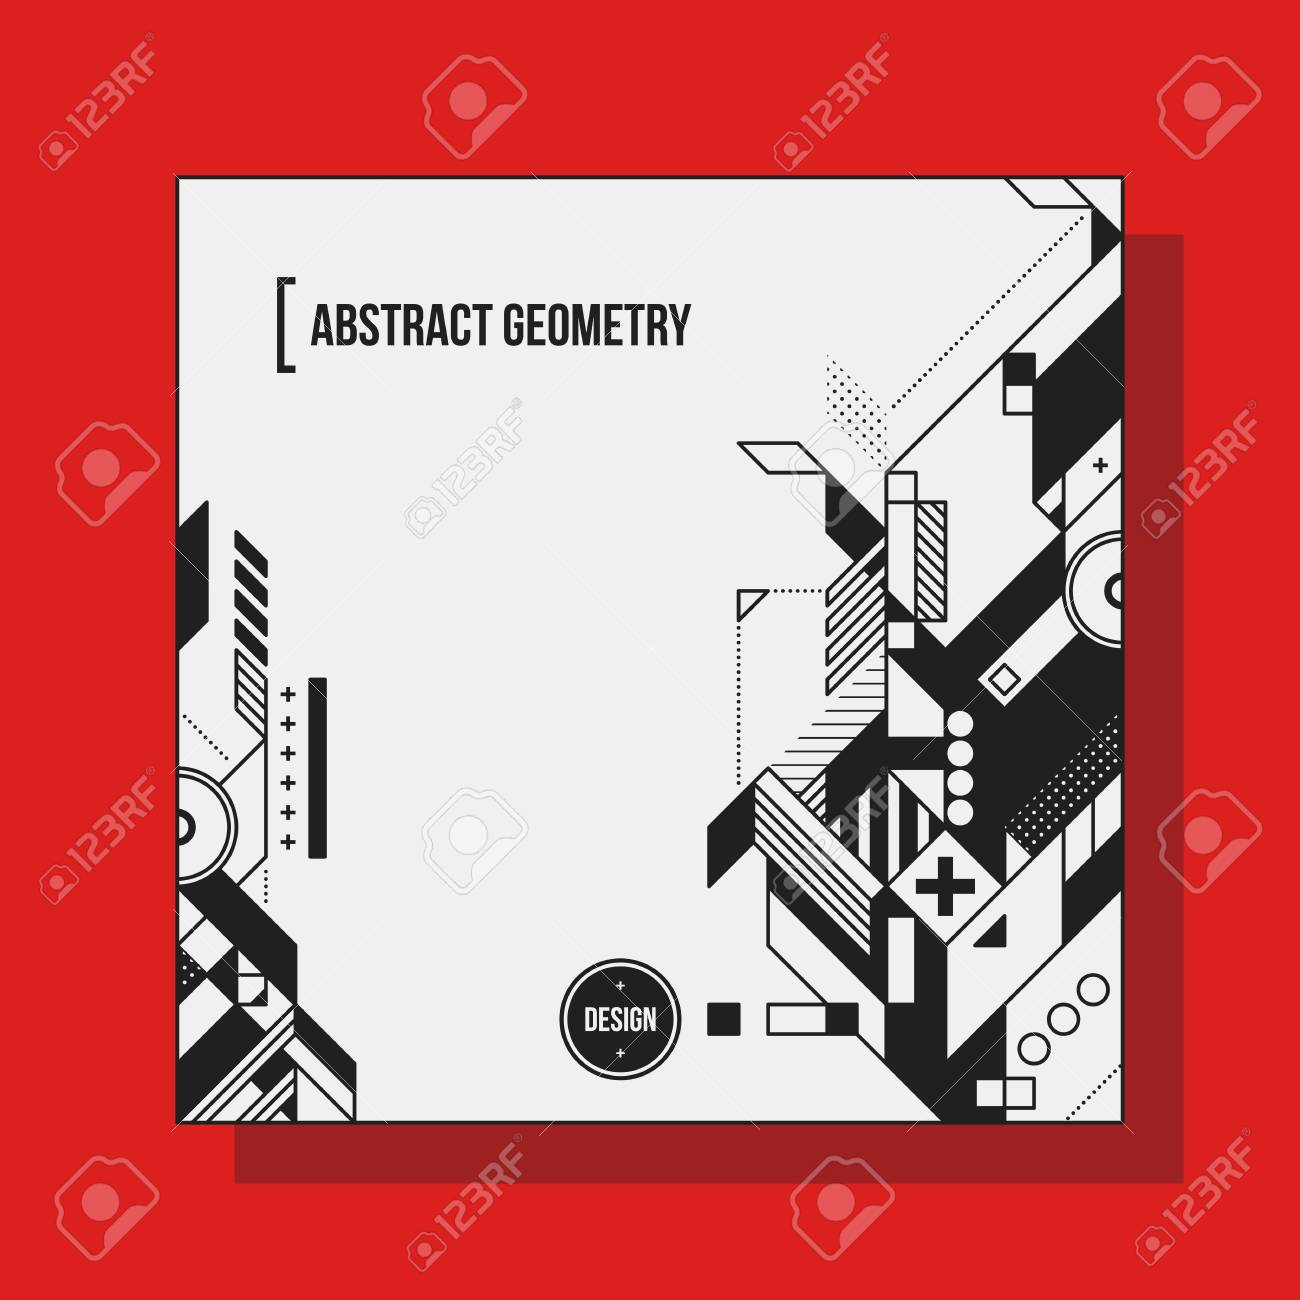 Square background design template with abstract geometric elements square background design template with abstract geometric elements useful for cd covers advertising and maxwellsz